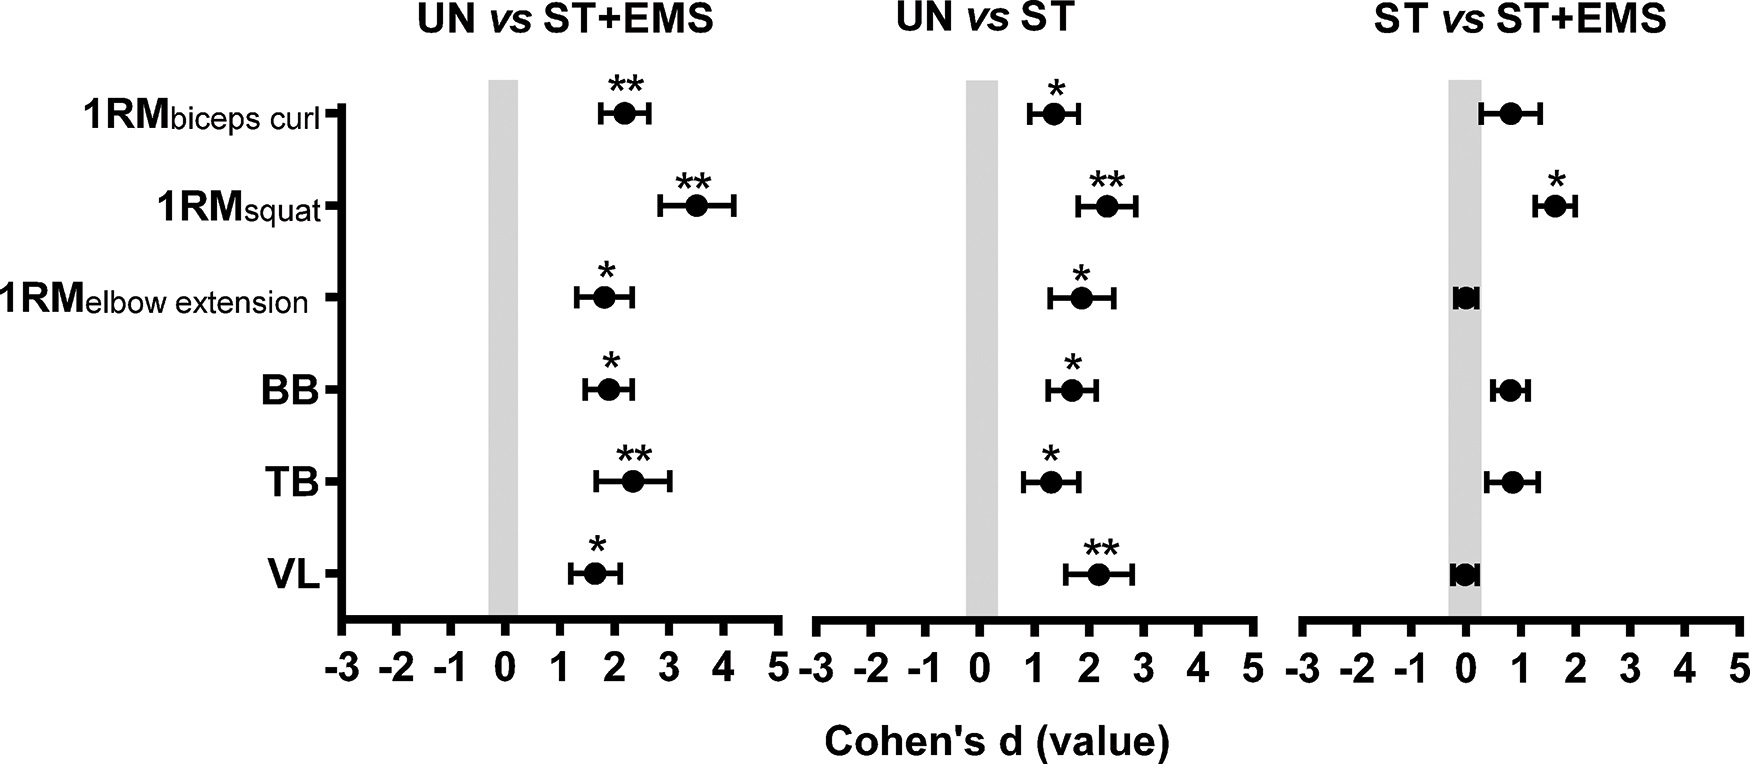 Coheńs effect size (ES) principle ± 90% confidence intervals (CIs) were used to compare the absolute differences between the untrained (UN), strength training (ST) and strength training combined with body electric stimulation (ST+EMS) groups considering the one-repetition maximal strength test (1RM) and the muscle thickness (MT) of the biceps brachii and brachialis (BB), triceps brachii (TB) and vastus lateralis (VL). *Large ES **Very large ES.